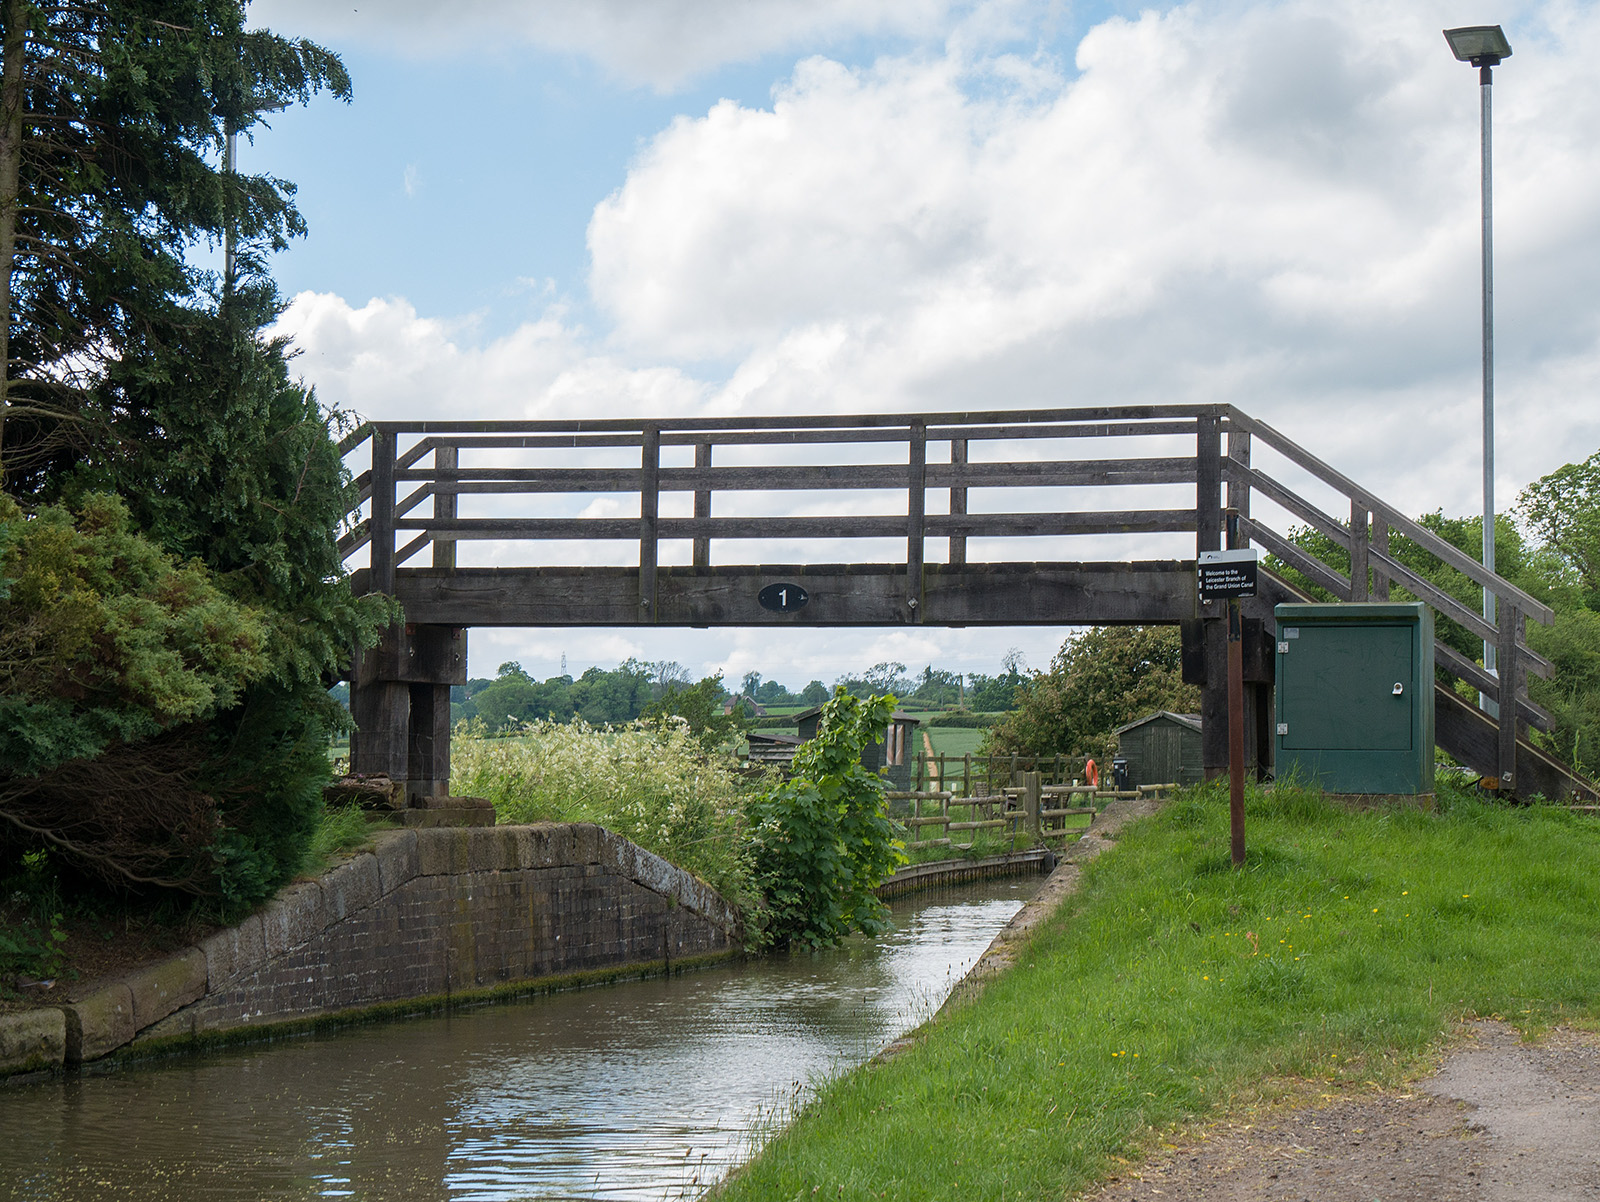 No, not bridge 1 on the Grand Union Canal, but the first bridge on the Leicester canal